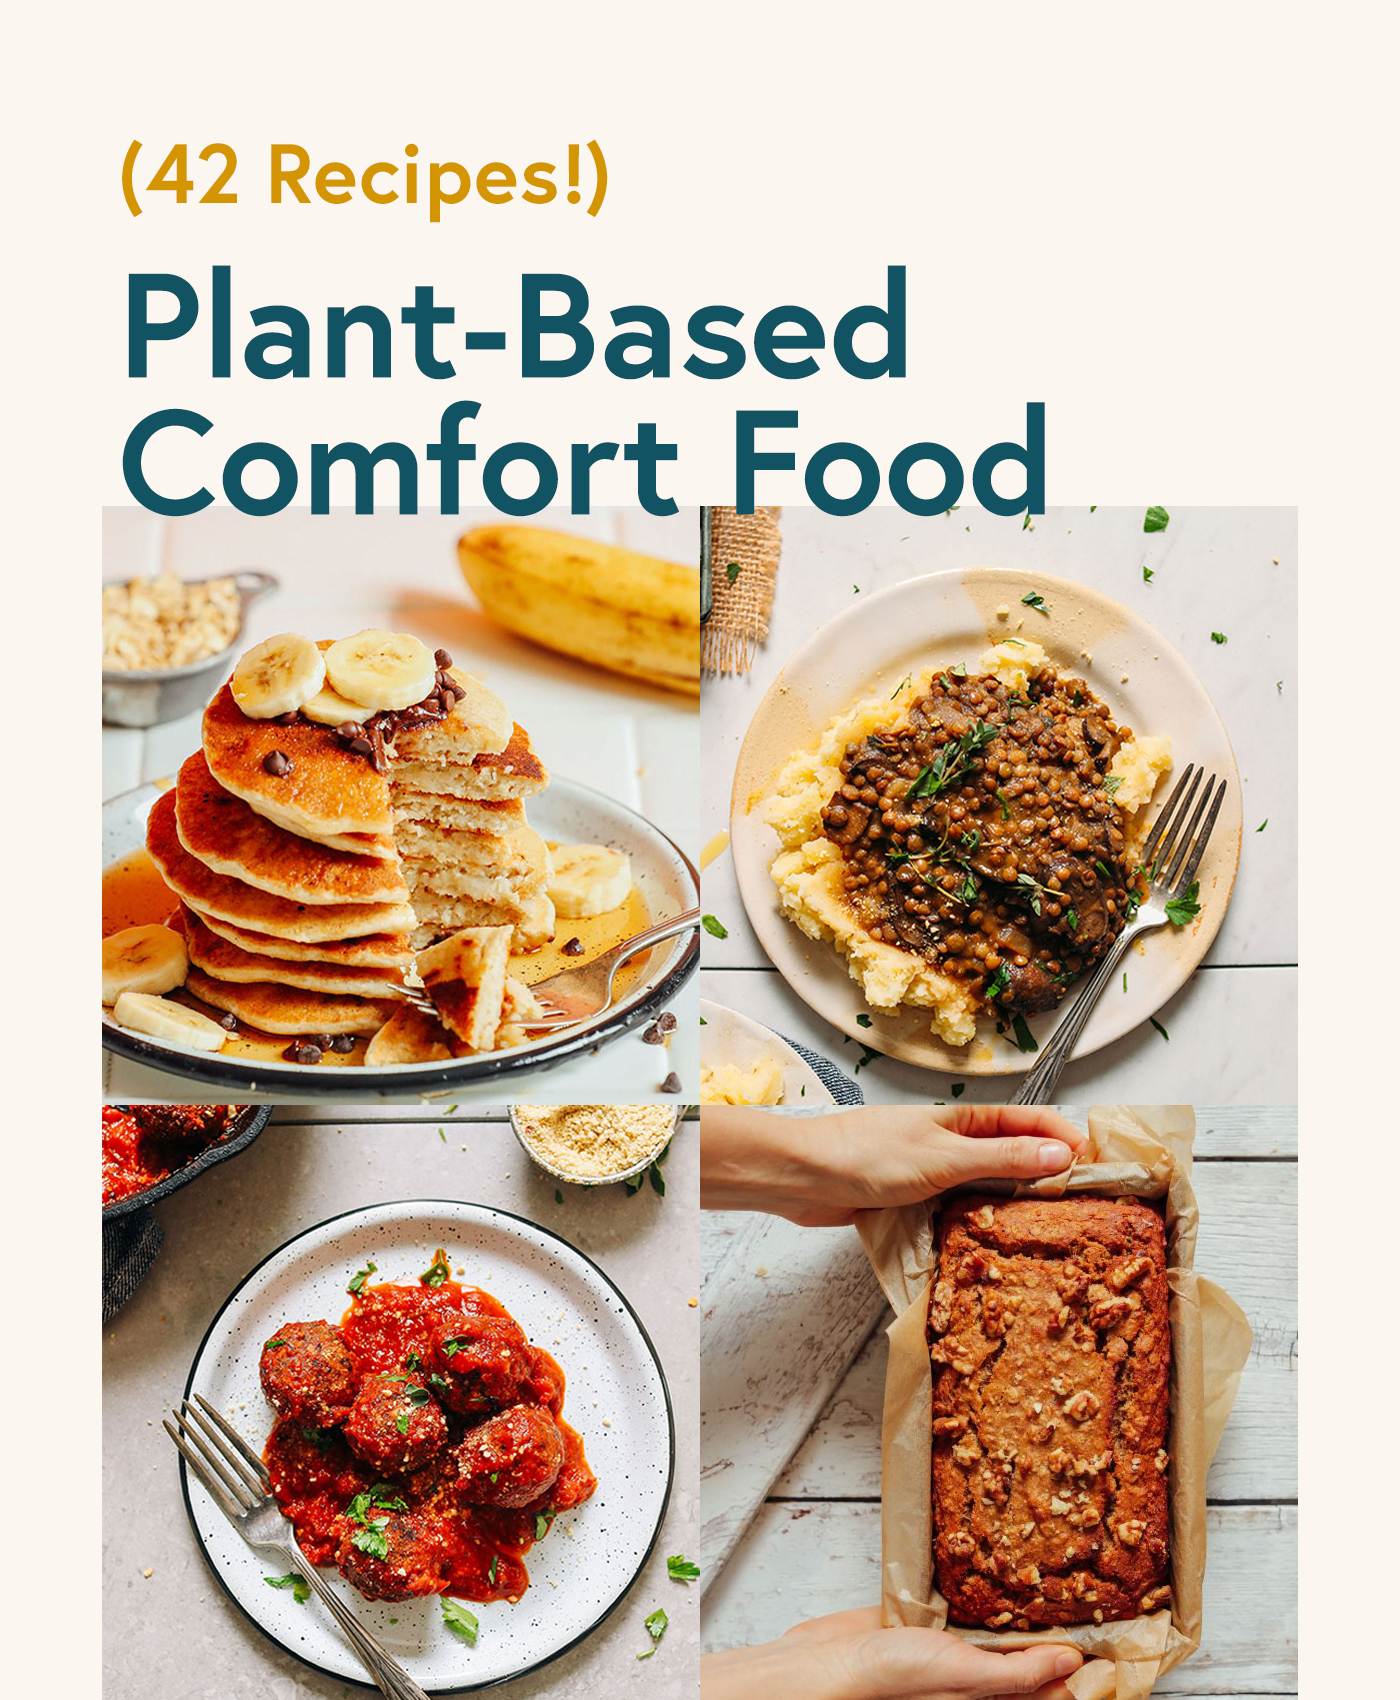 Photos of pancakes, mashed potatoes, vegan meatballs, and banana bread for our round-up of plant-based comfort food recipes